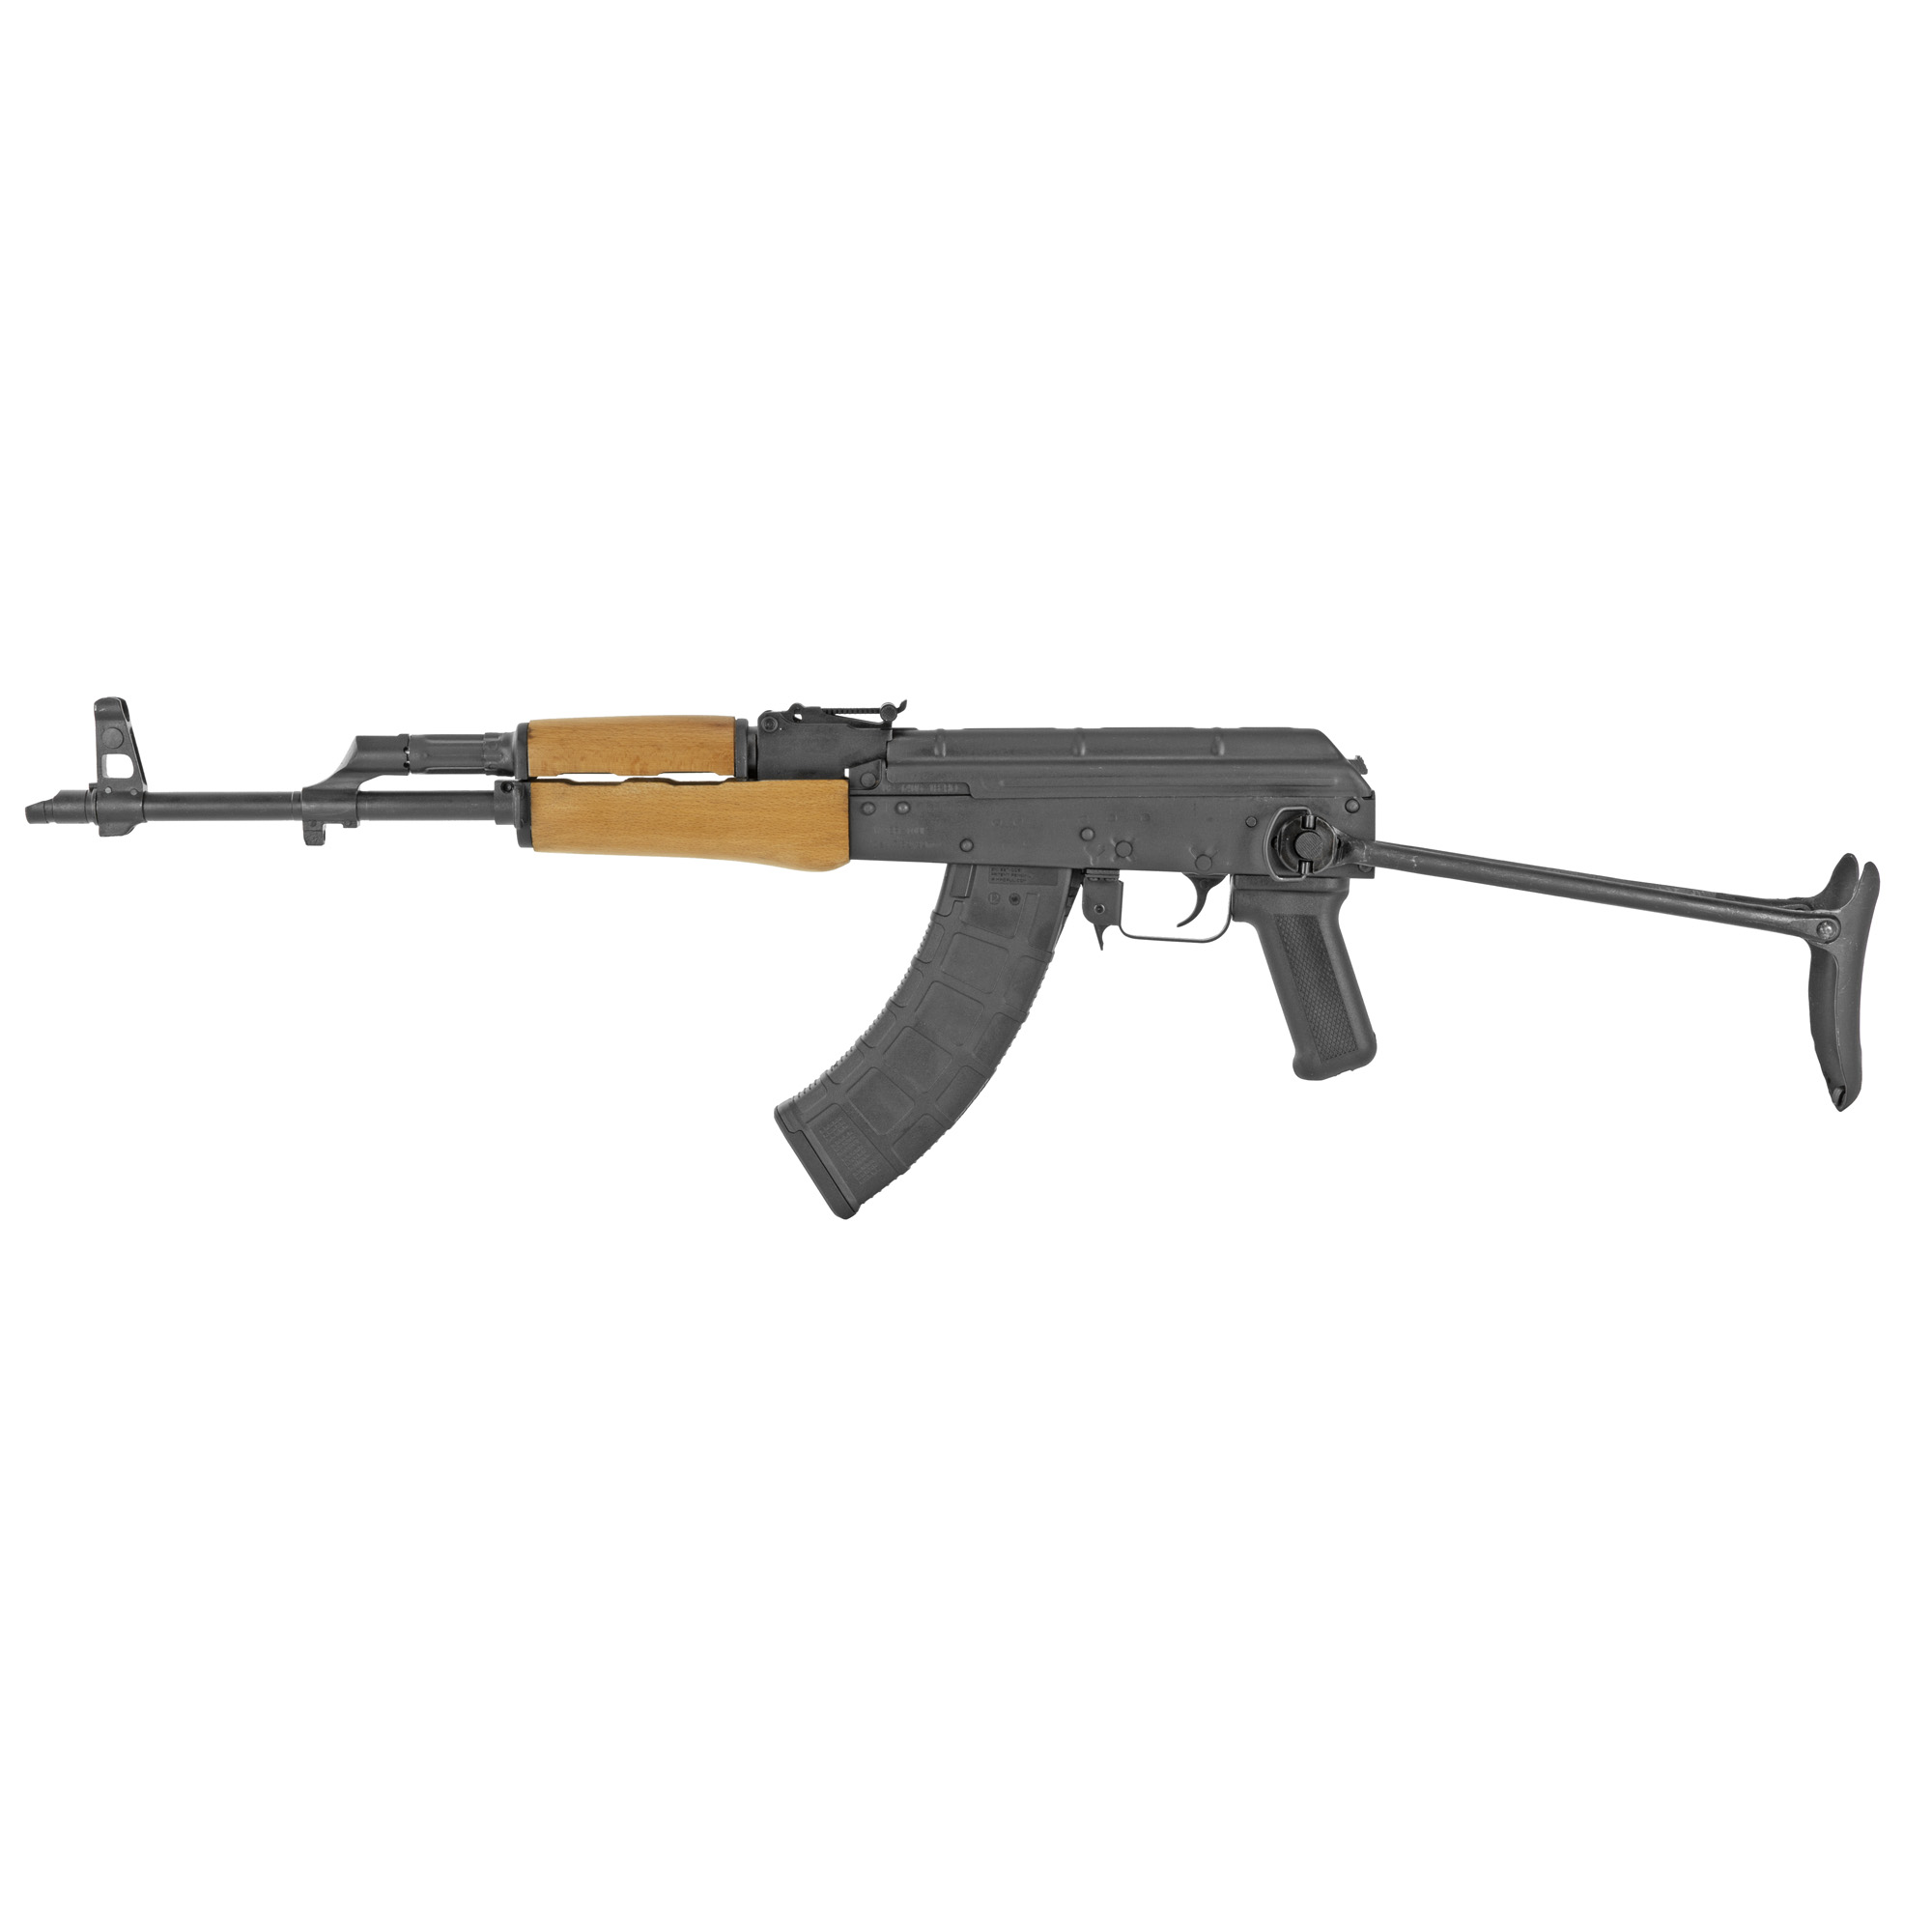 """The WASR-10 Underfolder is one of the most sought-after Romanian import AK-pattern rifles. With the stock folded the rifle becomes very compact and perfect for hiking"""" home defense or a truck gun. Open the stock and the rifle provides a stable platform for more accurate target and sport shooting."""